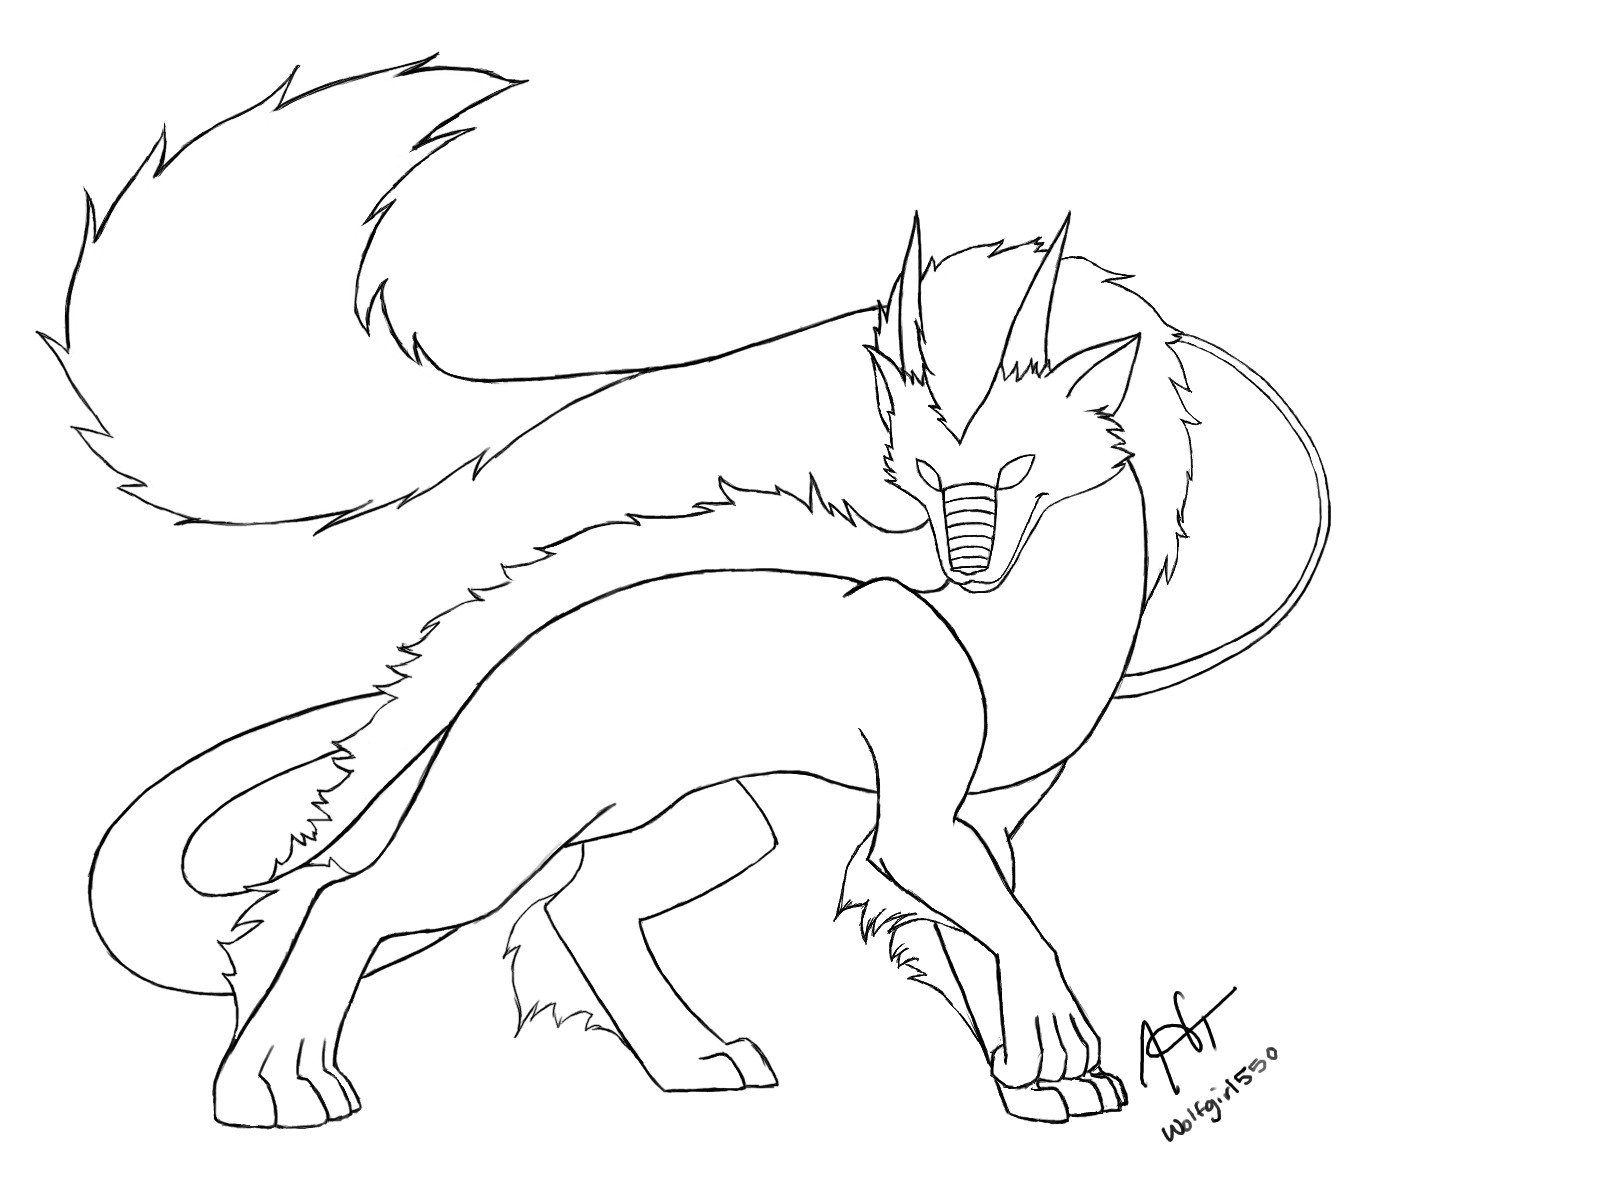 Simple Wolf Lineart : Wolf dragon line art thingy by wolfgirl on deviantart